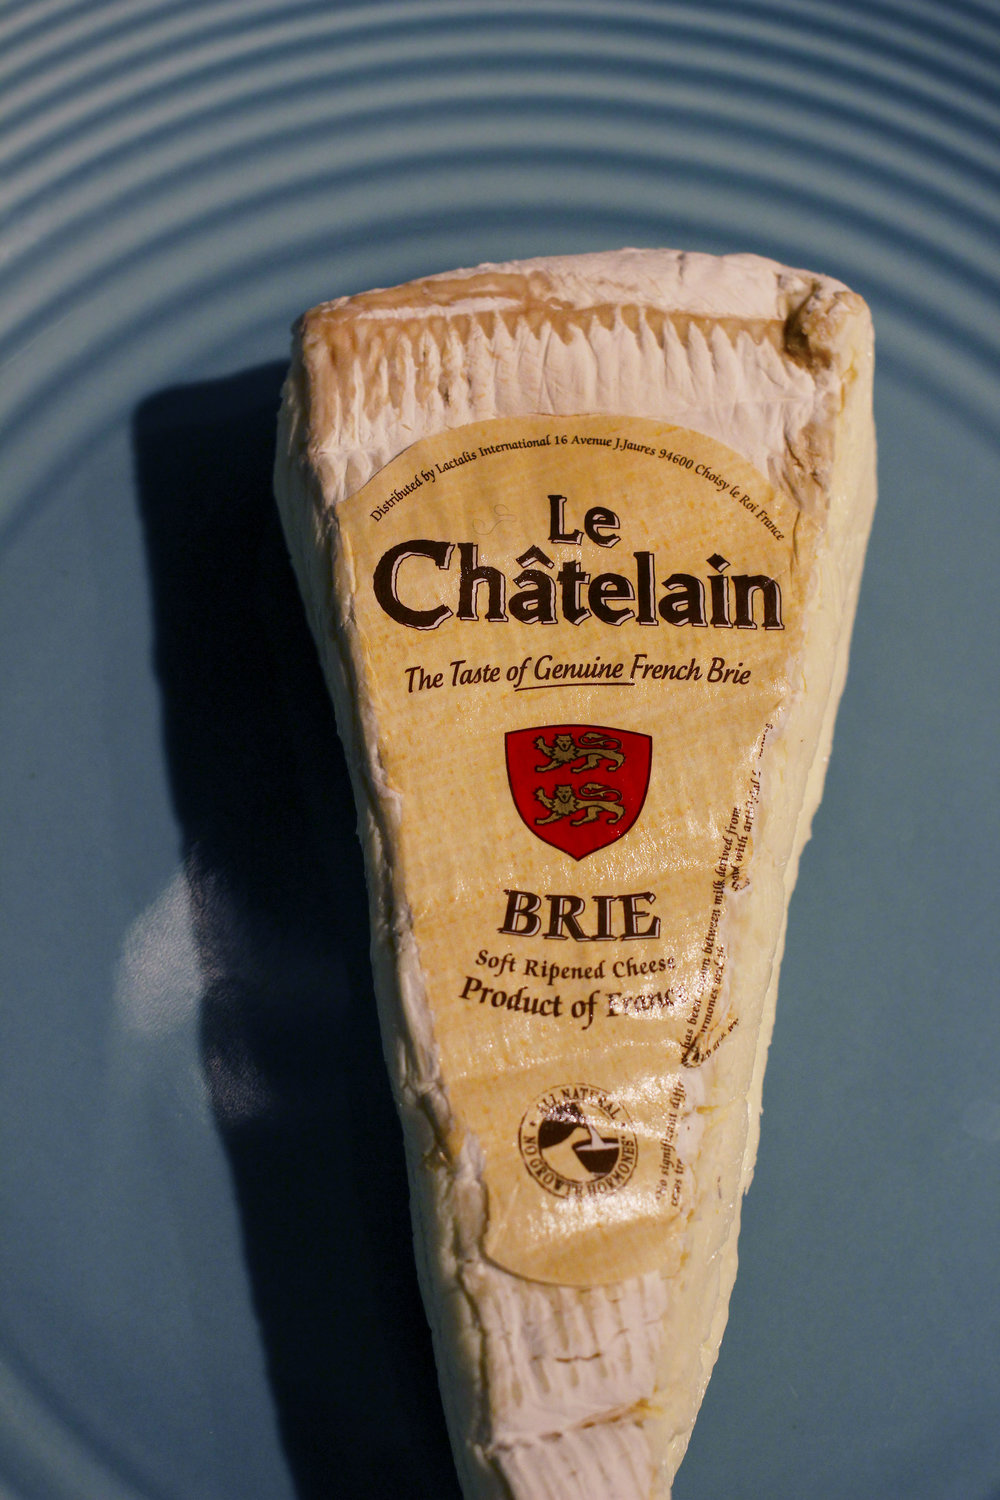 Click the Brie to learn more about it.